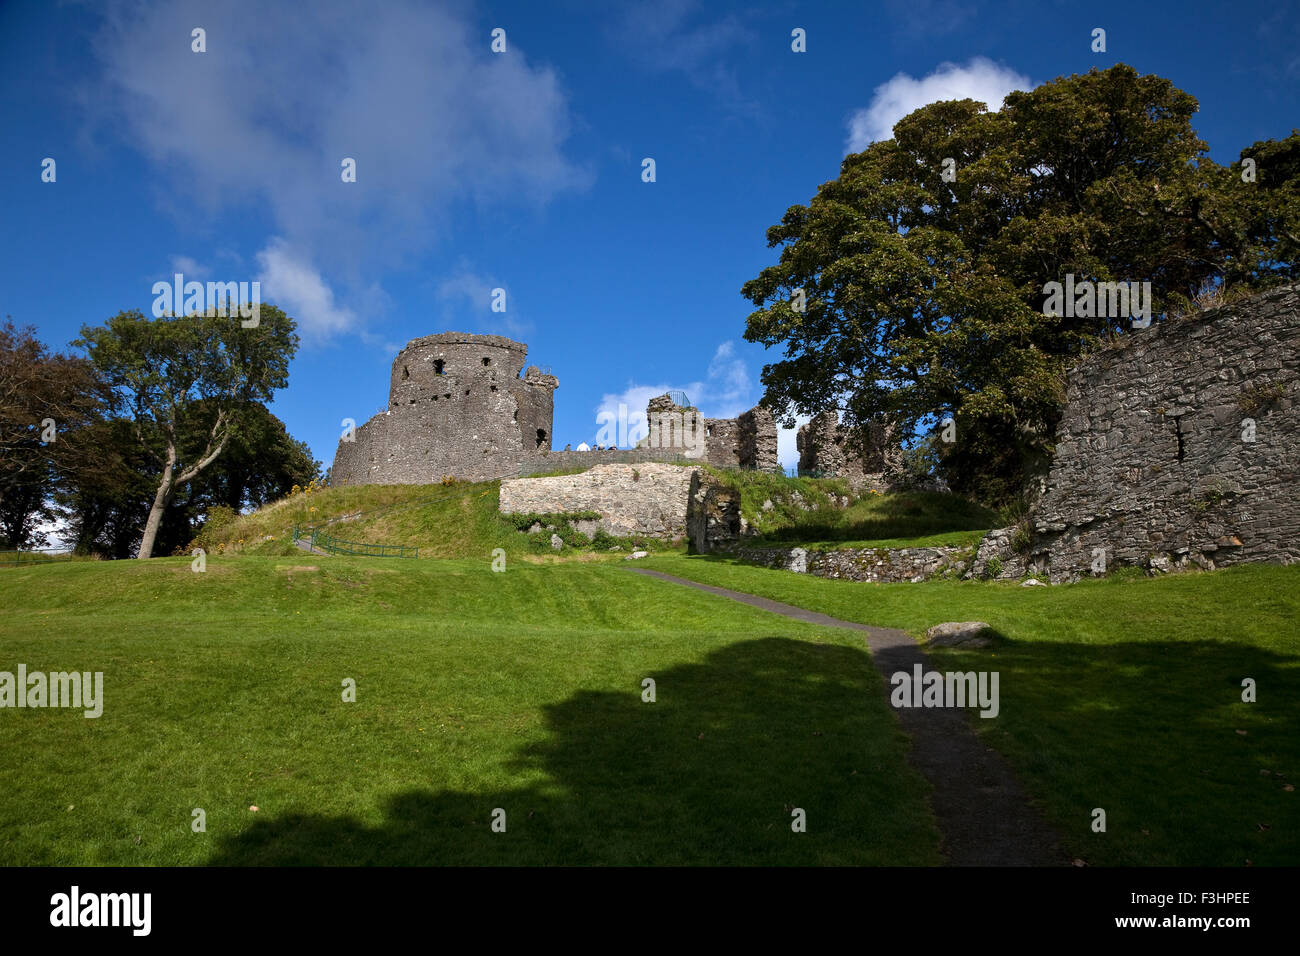 The Anglo Norman Castle started in 1180 by John de Courcy, Dundrum, County Down, Northern Ireland - Stock Image